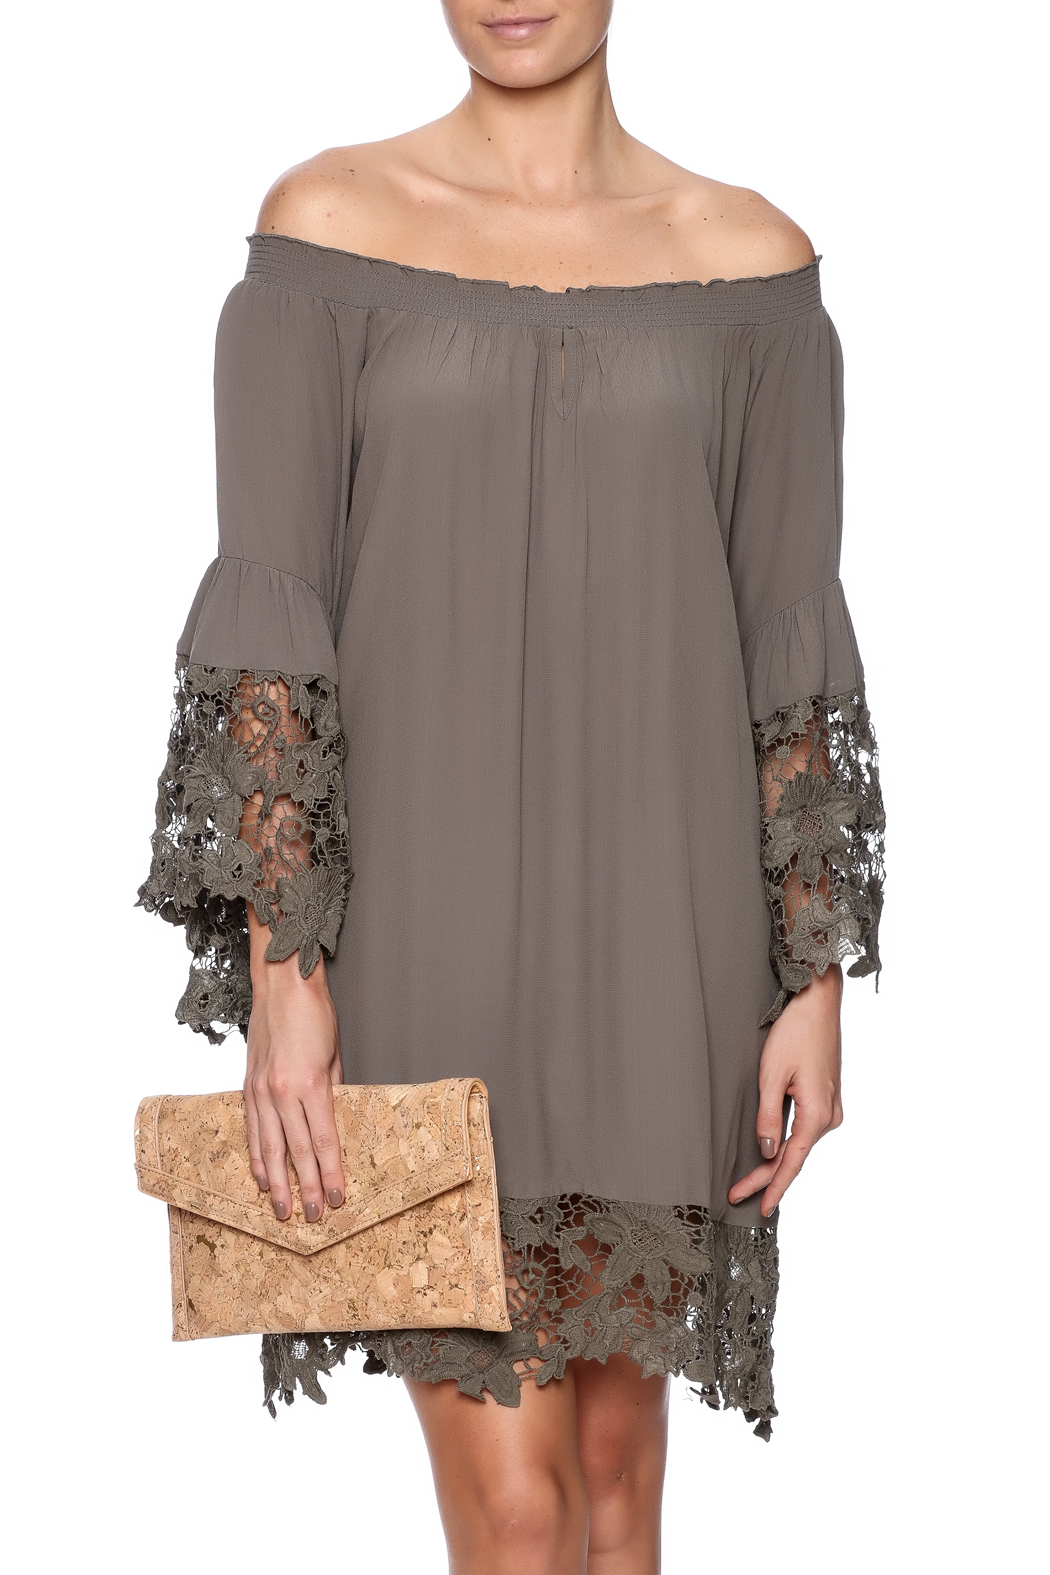 fade36cc4c10 Muche et Muchette Jolie Lace Dress from New York by Let s Bag It ...